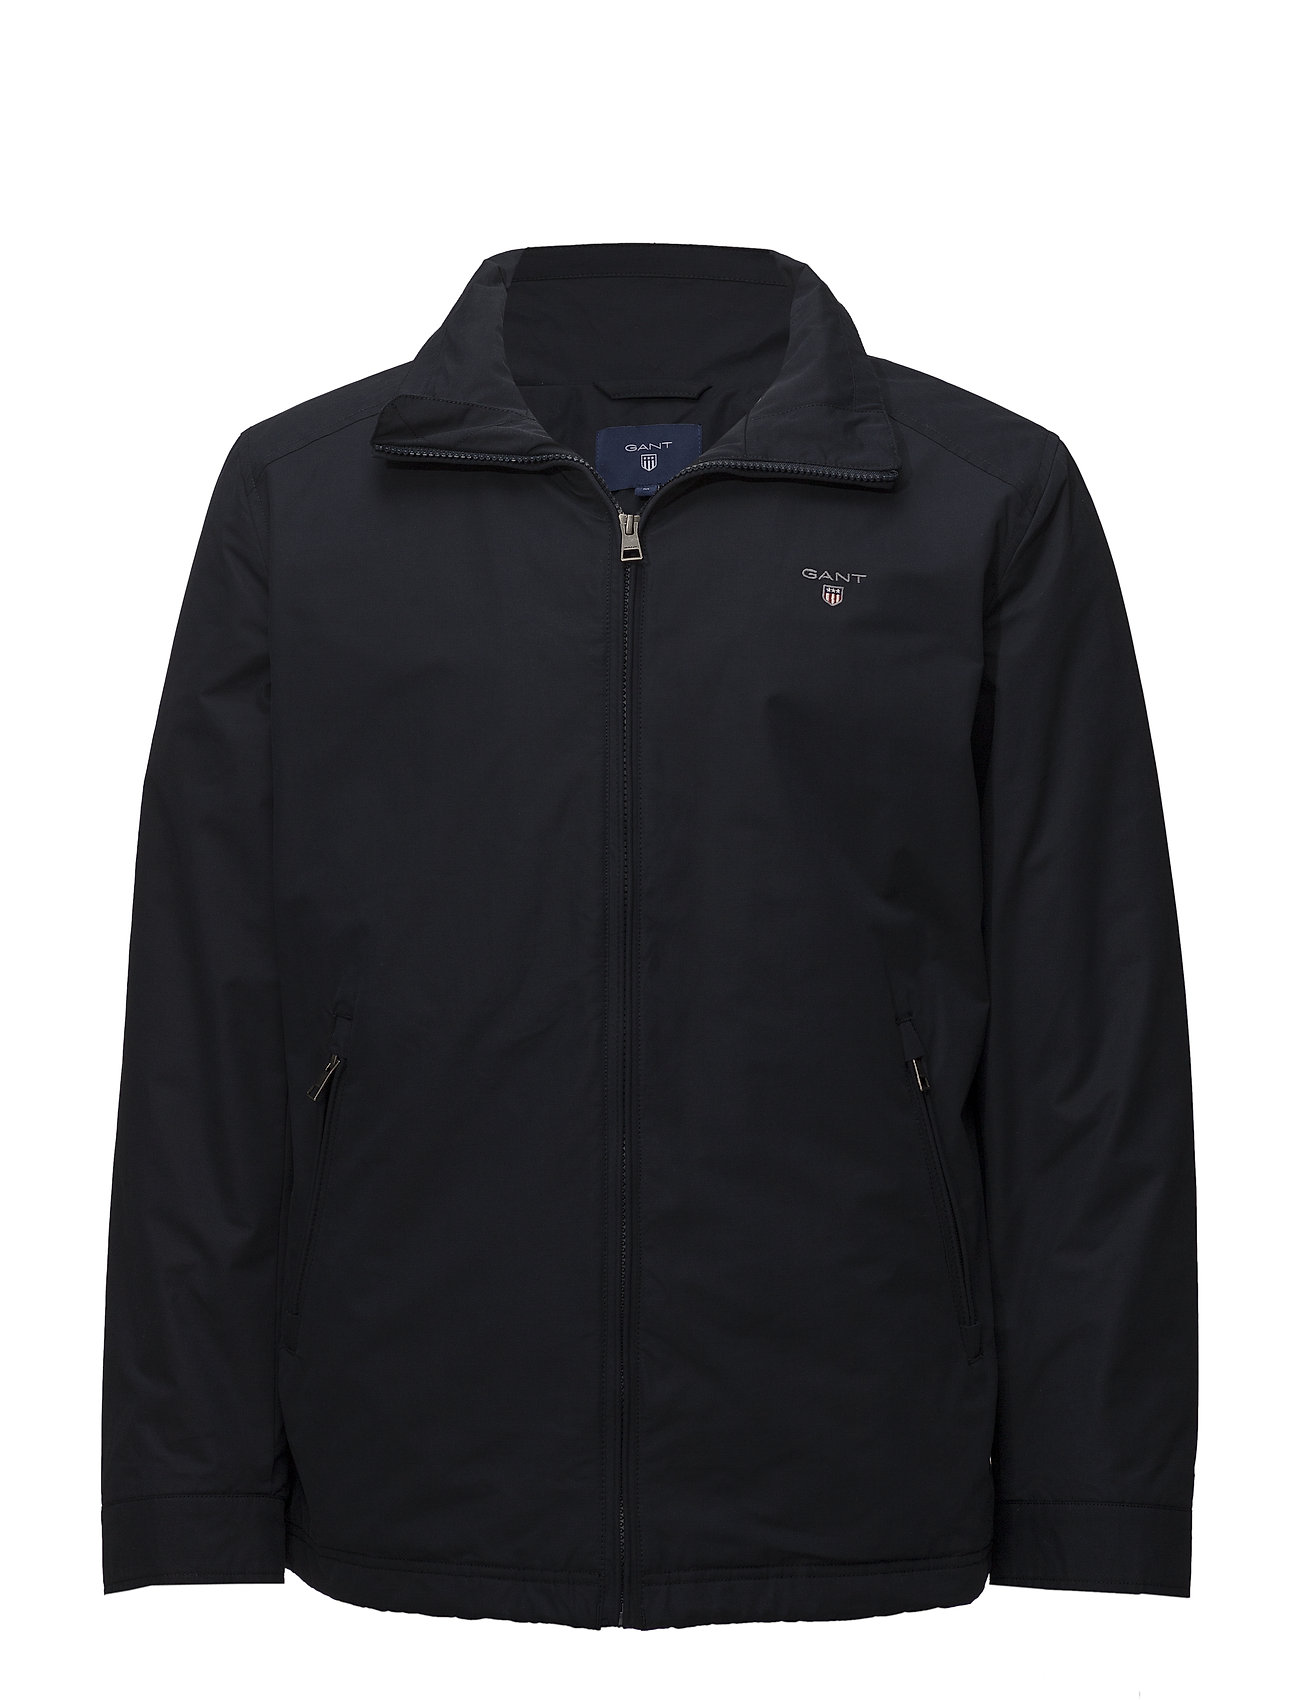 GANT O1. THE MIDLENGTH JACKET